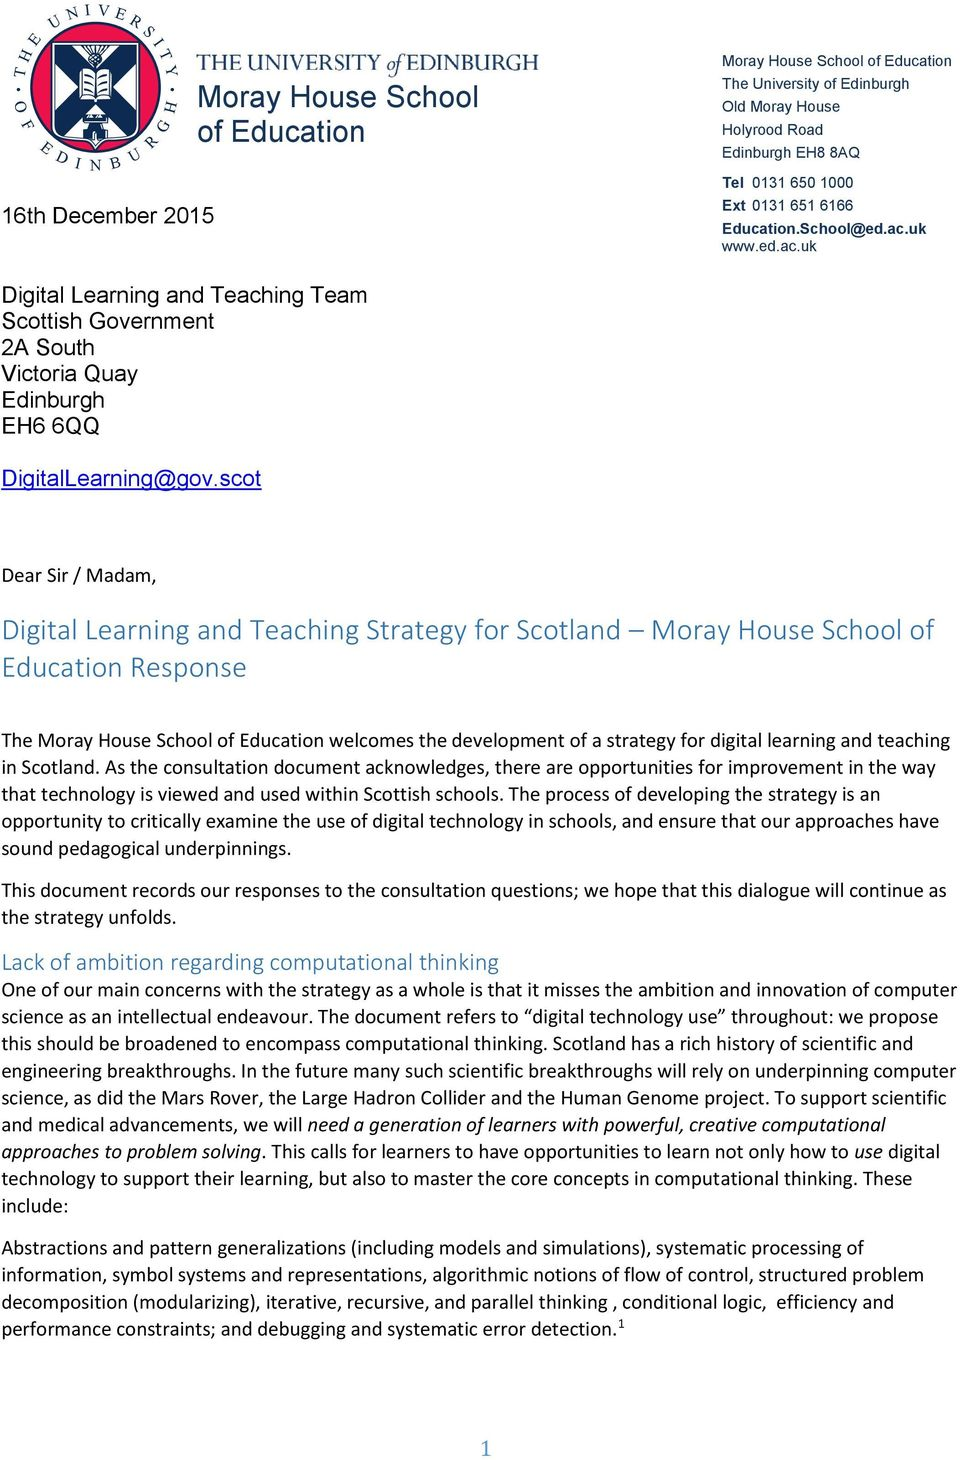 scot Dear Sir / Madam, Digital Learning and Teaching Strategy for Scotland Moray House School of ducation Response The Moray House School of ducation welcomes the development of a strategy for